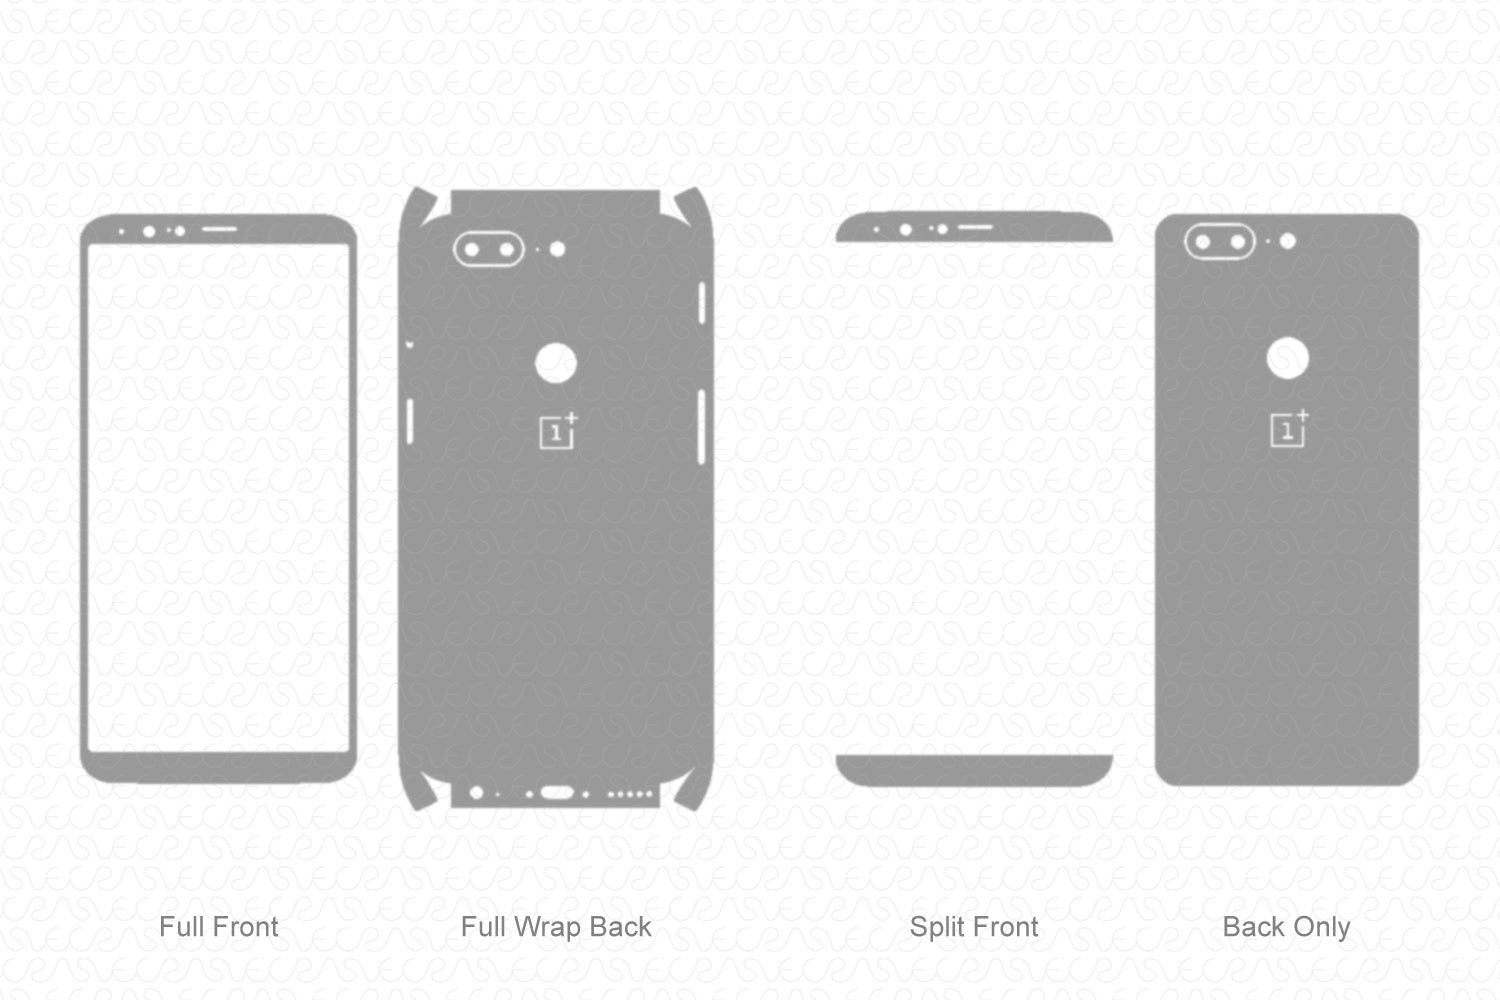 OnePlus 5T (2017) Skin Template Vector